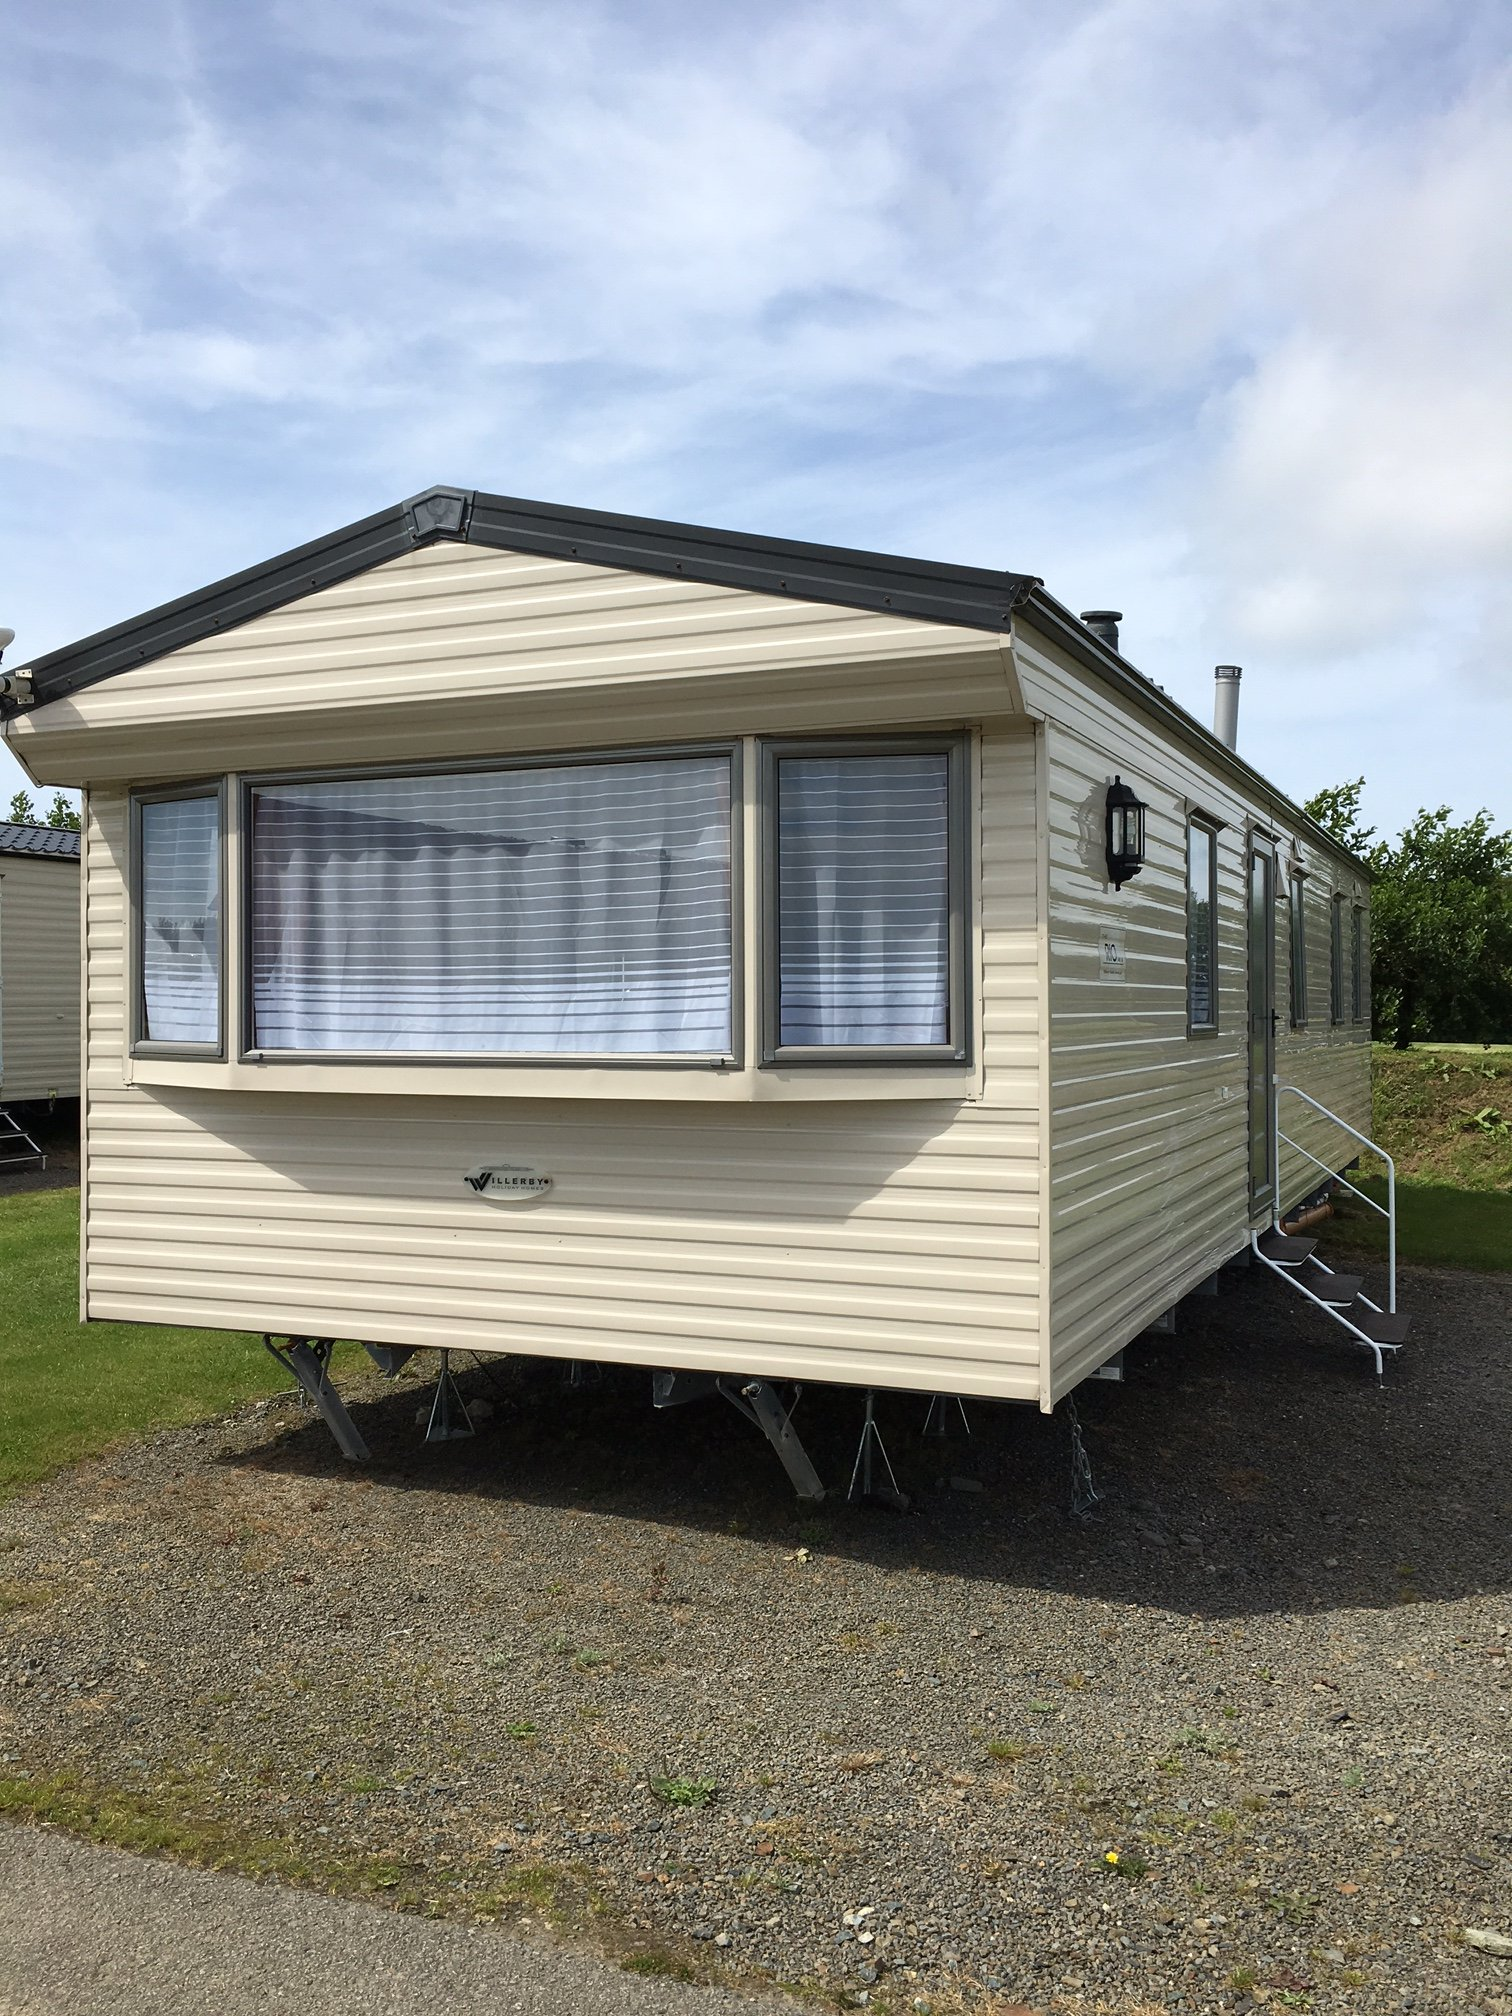 Unique Details About Caravans For Hire At Widemouth Bay Near Bude In Cornwall